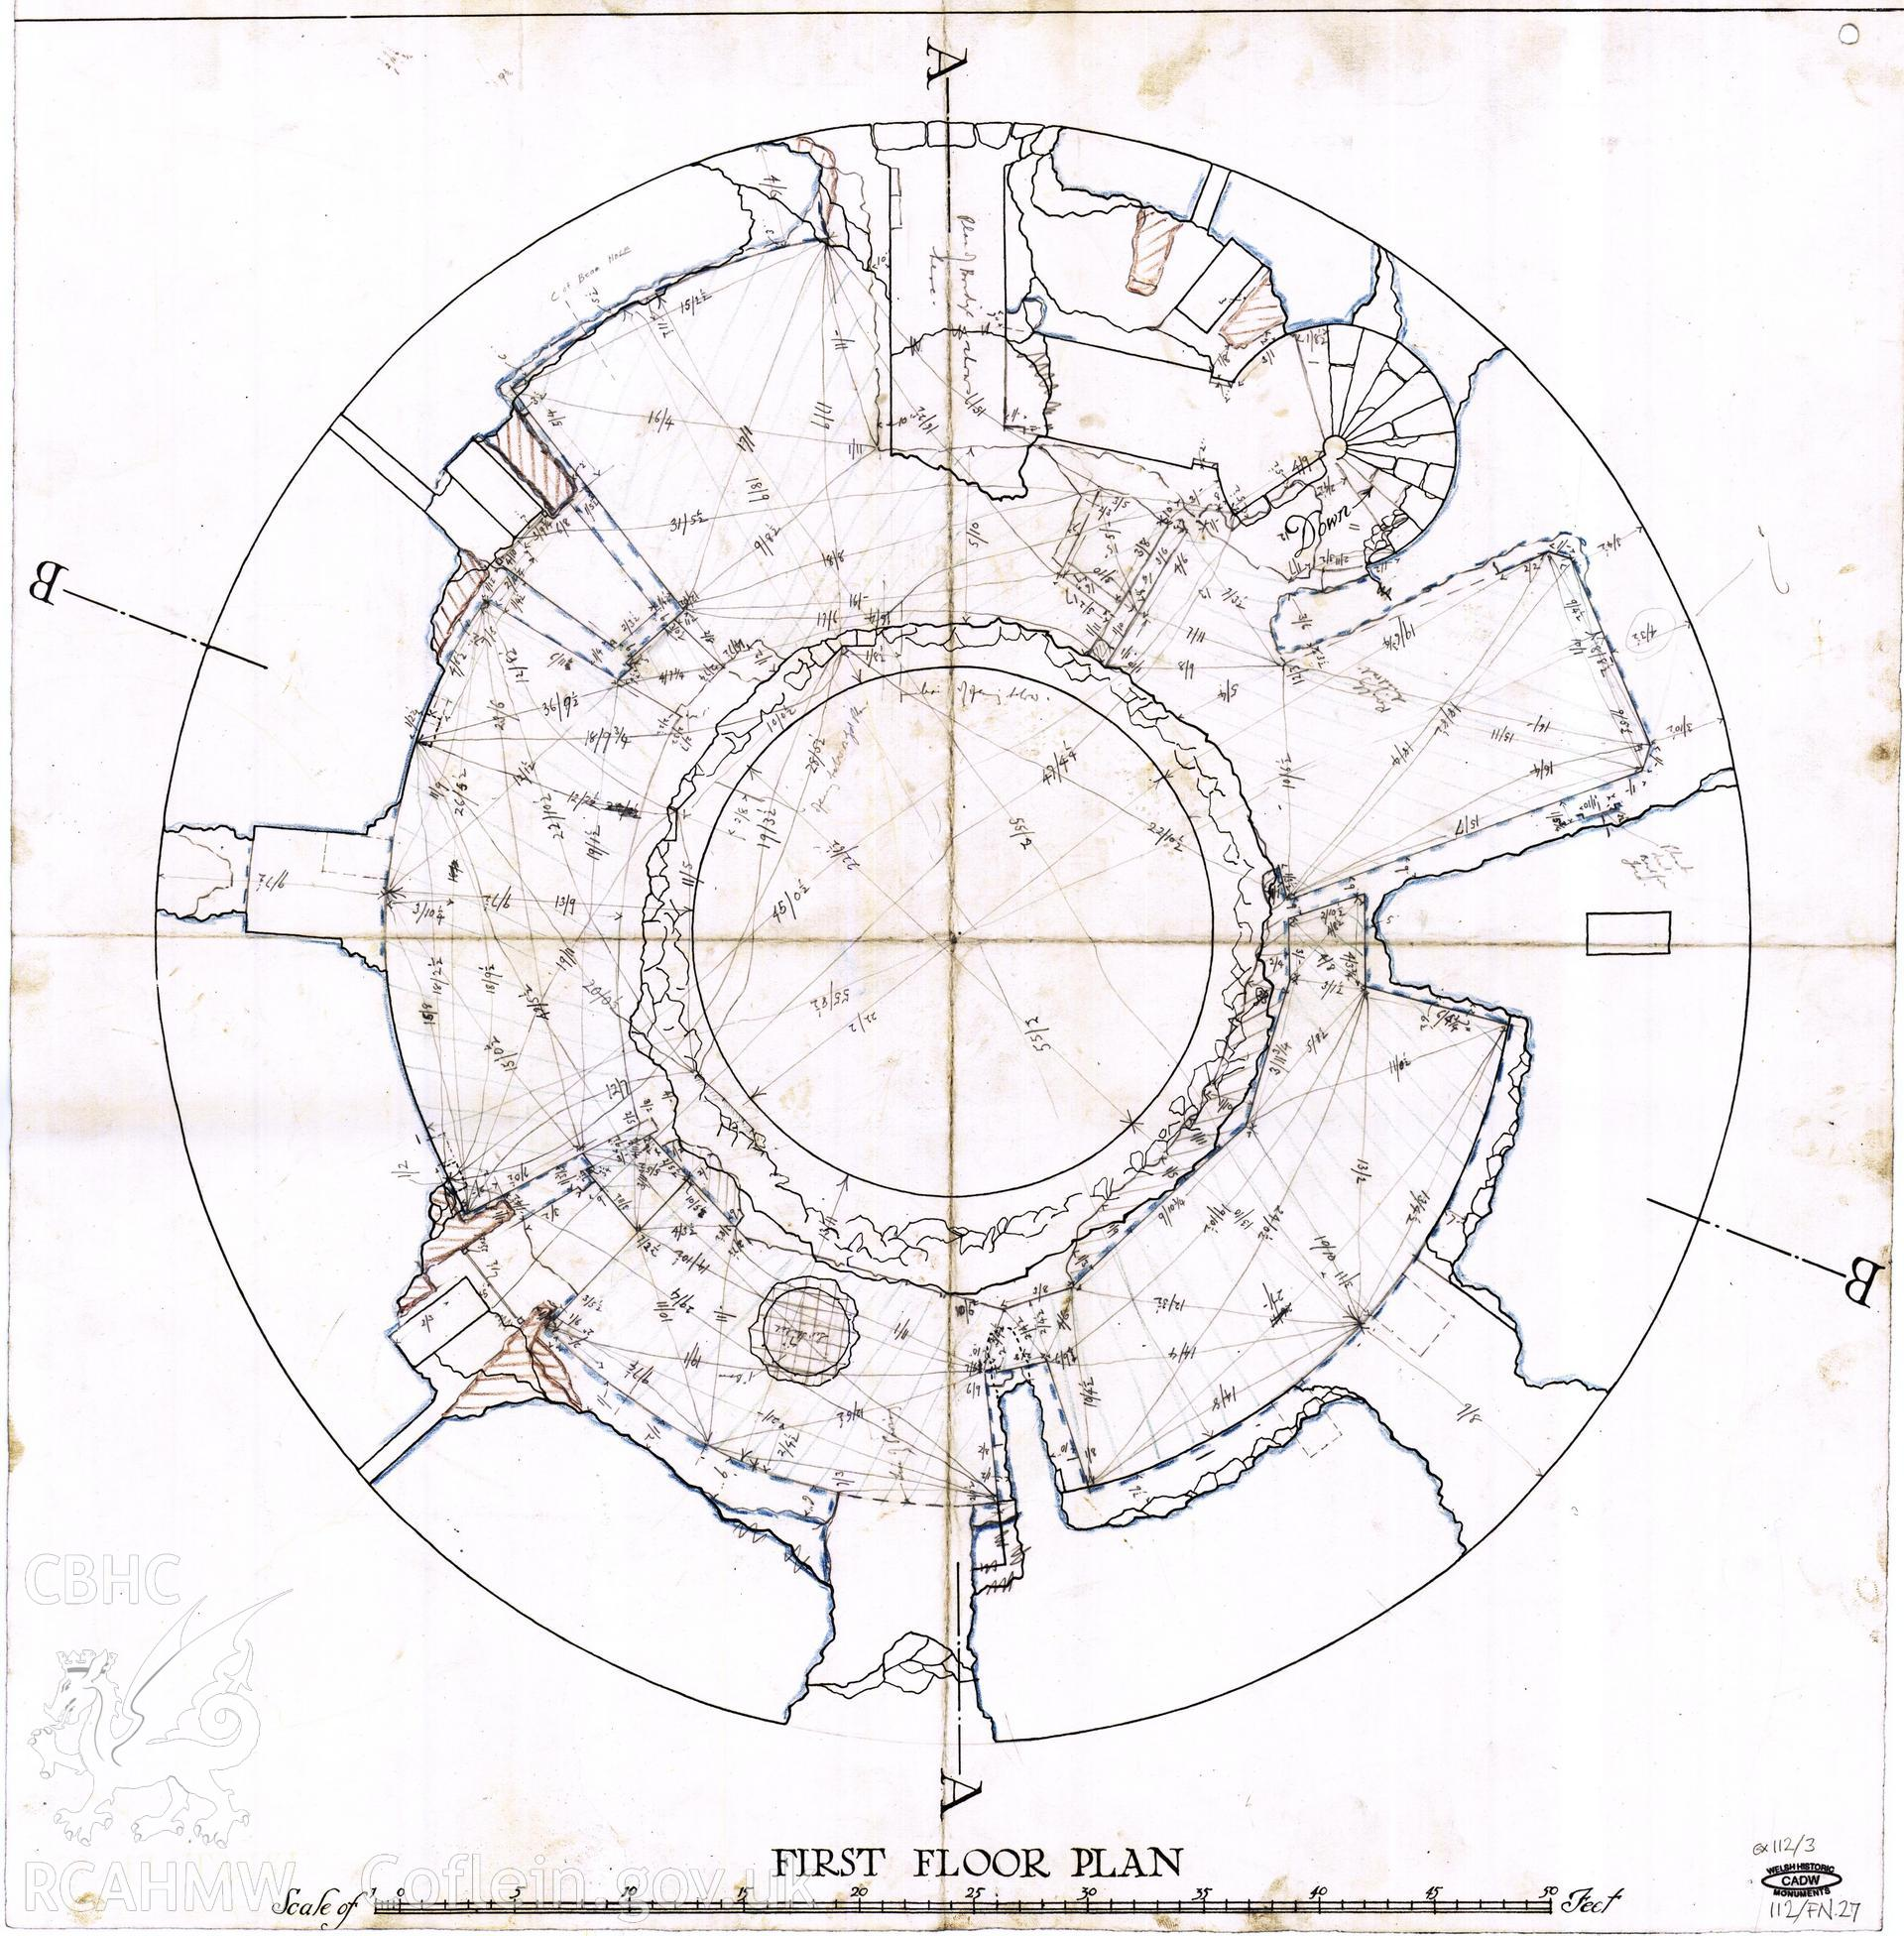 Cadw guardianship monument drawing of Flint Castle. Round keep (SE) u plan (ex 112/4). Cadw Ref. No:112/FN.27. Scale 1:48.